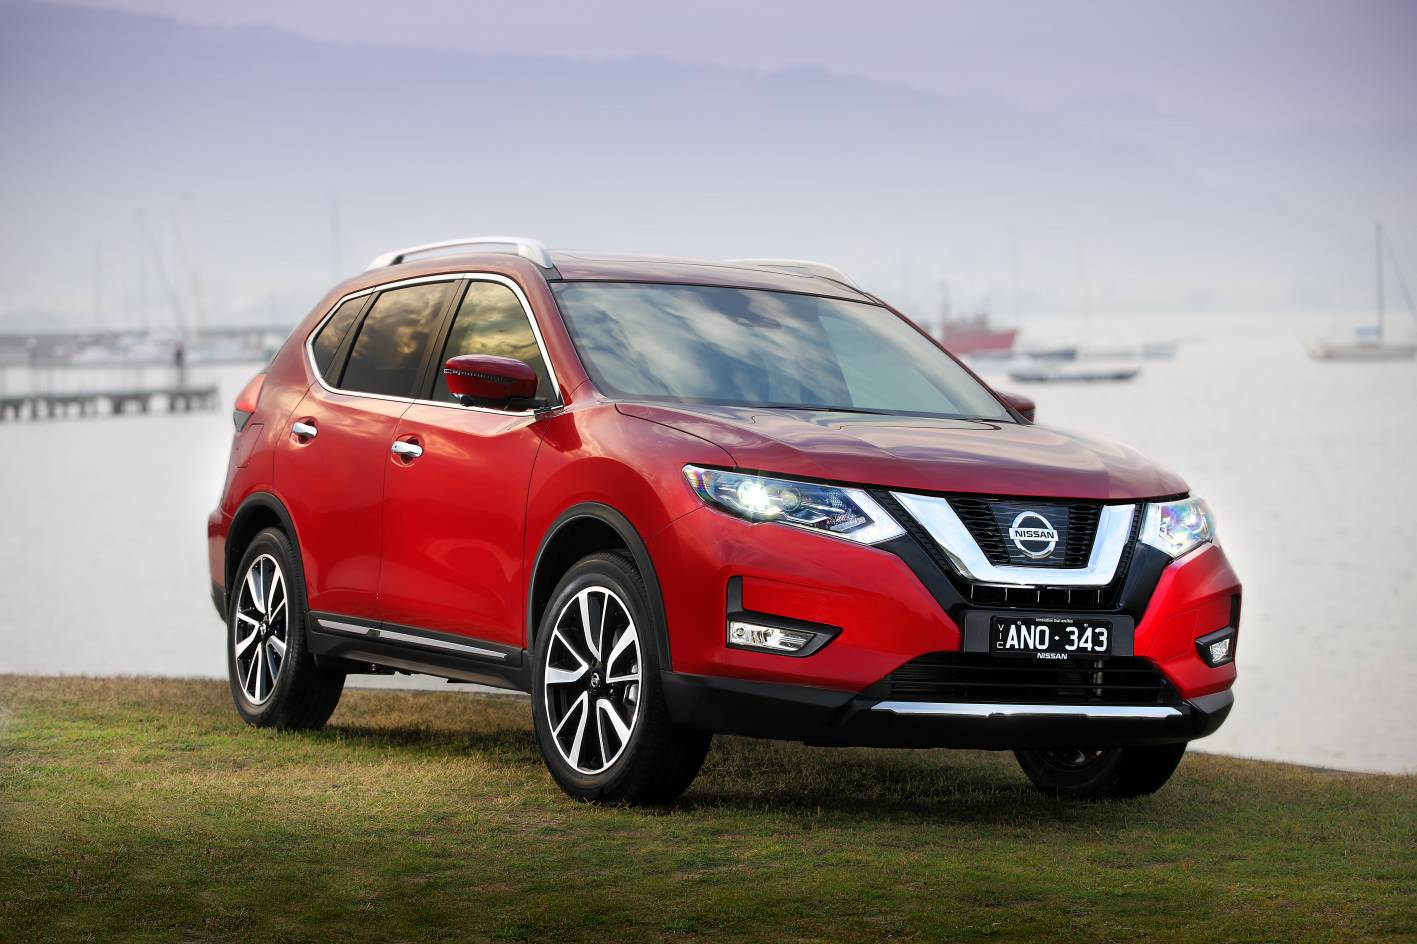 Nissan Of Alvin >> Updated 2017 Nissan X-Trail gets new stronger diesel